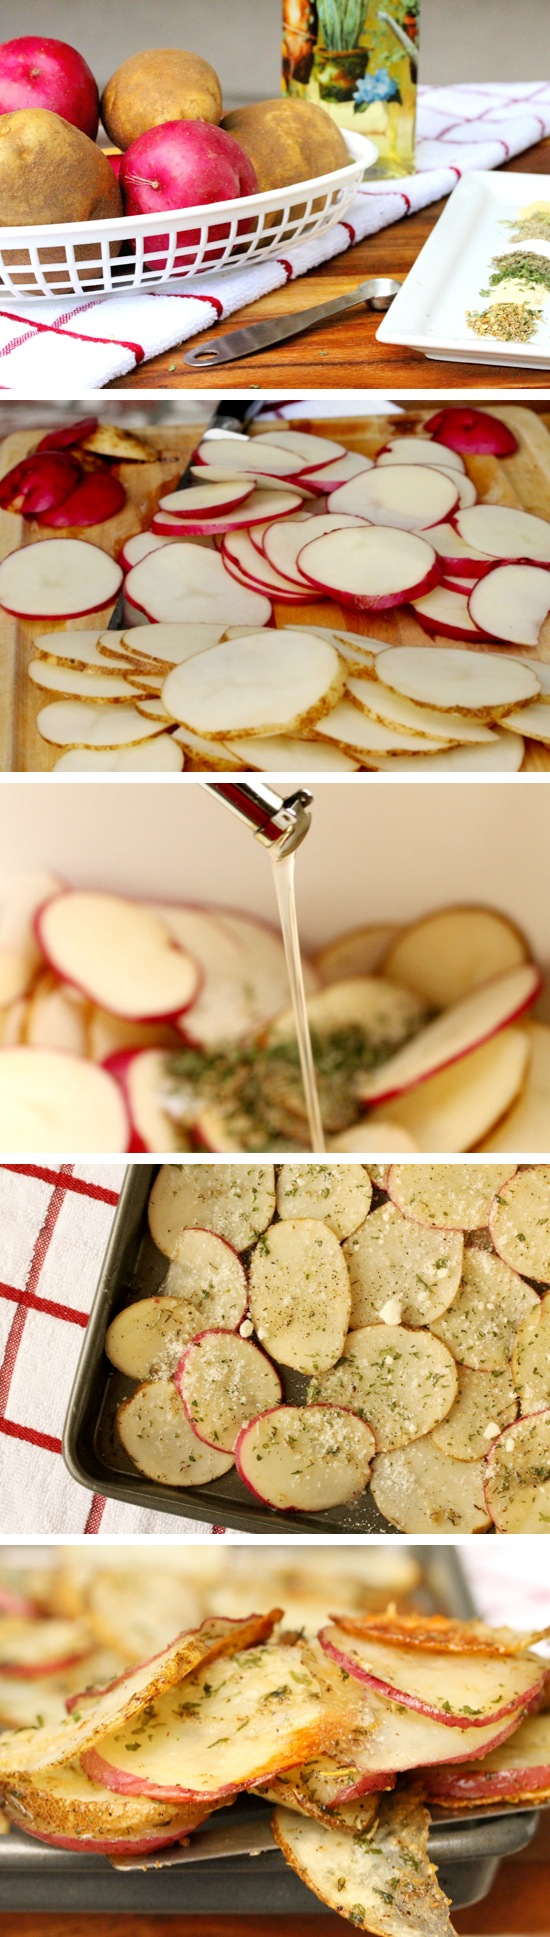 Baked-Herb-and-Parmesan-Potato-Slices